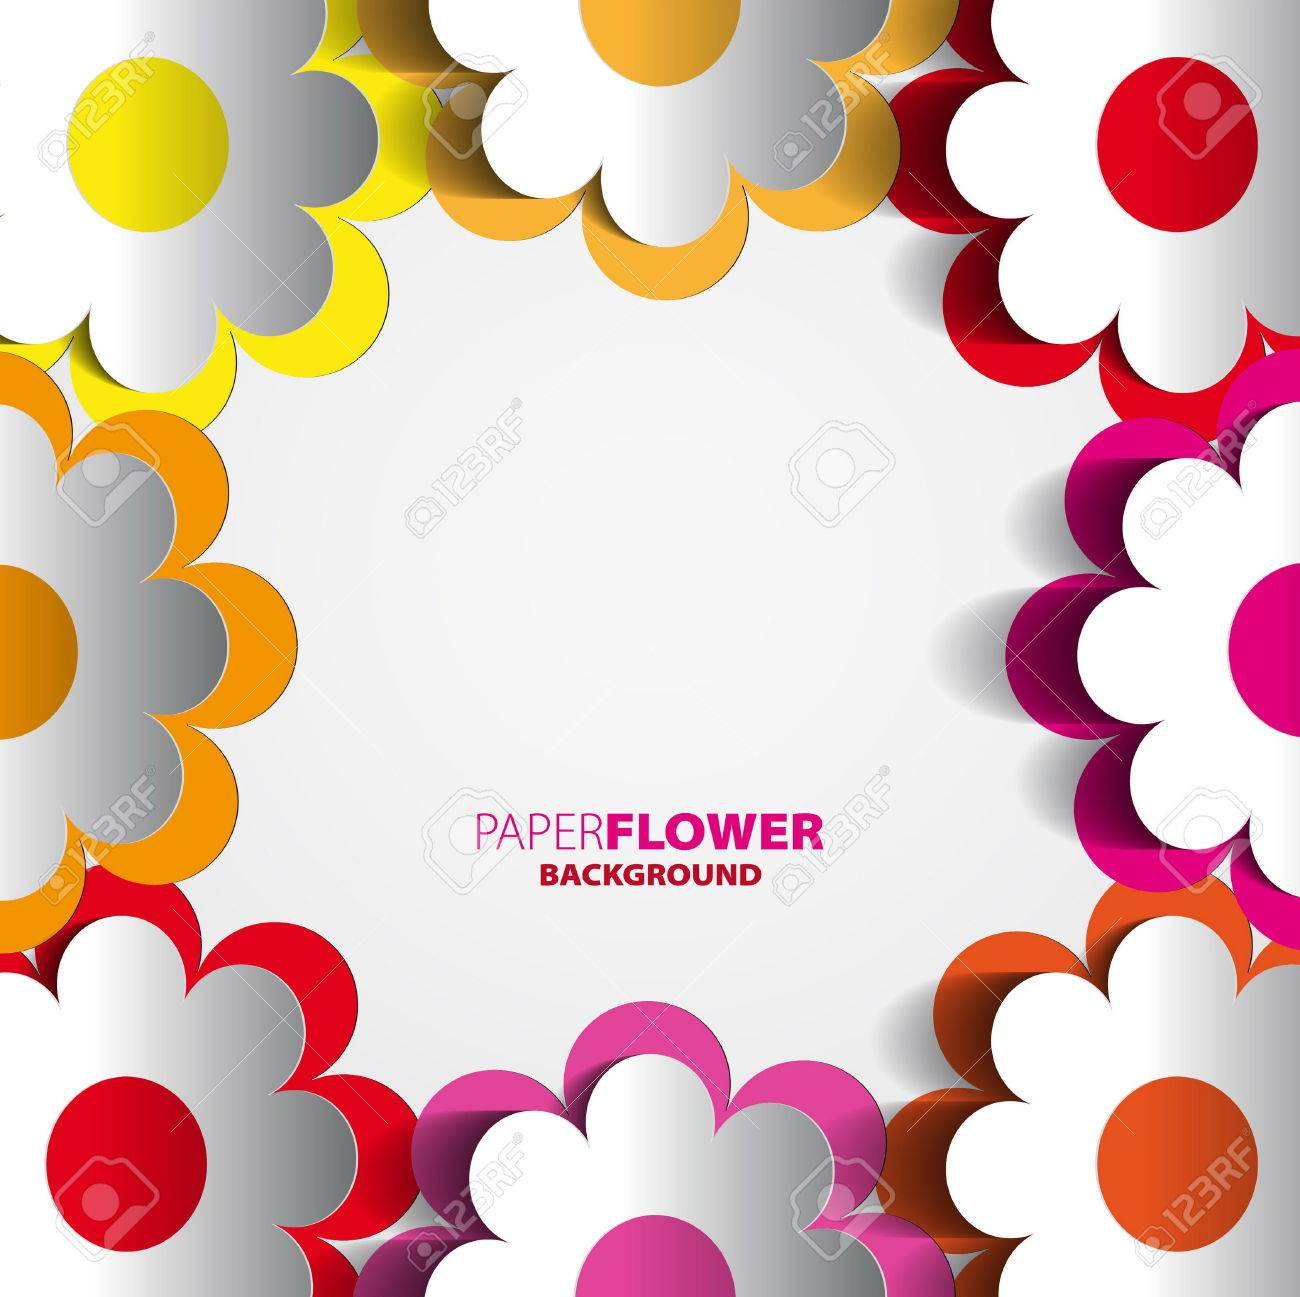 Color Paper Flowers Cutout Background Eps10 Vector Illustration